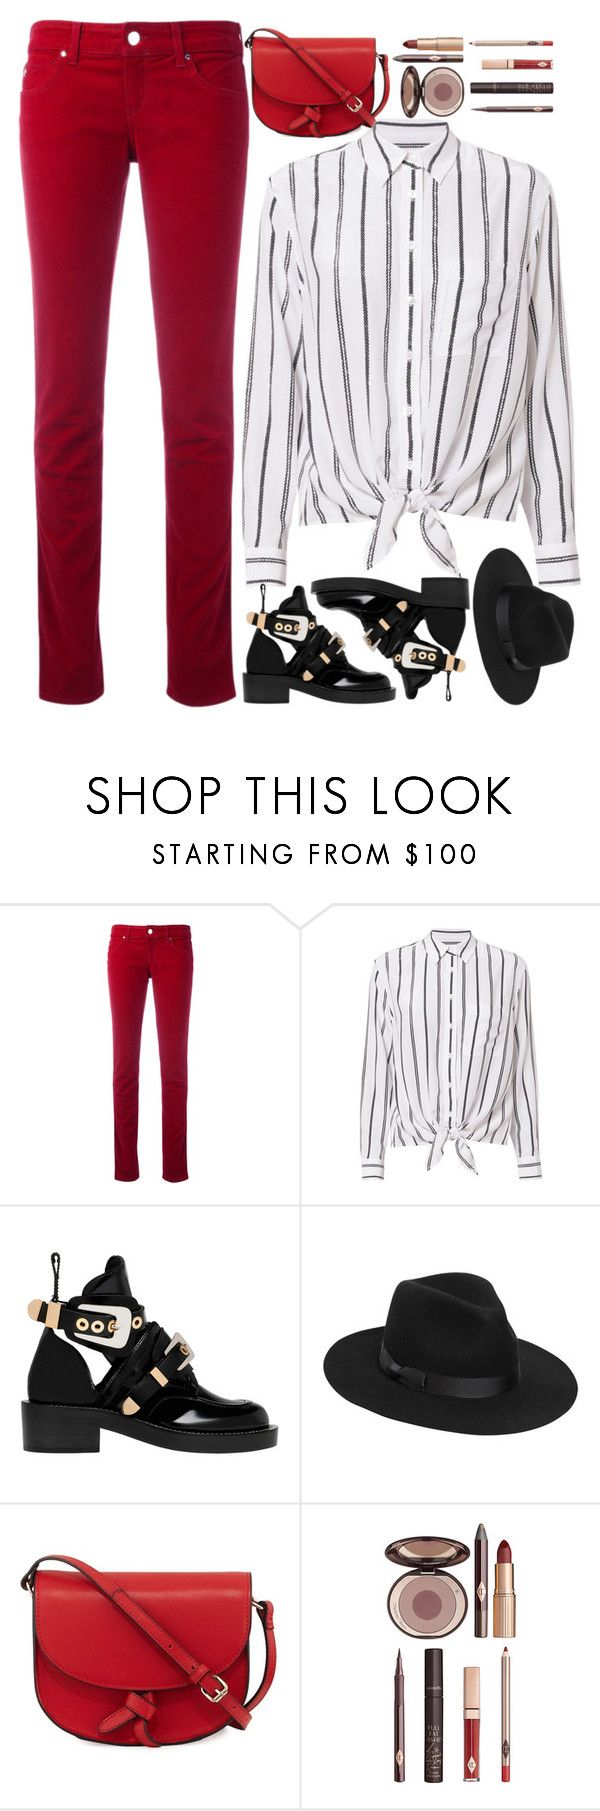 """""""street style"""" by ecem1 ❤ liked on Polyvore featuring Armani Jeans, Equipment, Balenciaga, Lack of Color, KC Jagger and Charlotte Tilbury"""